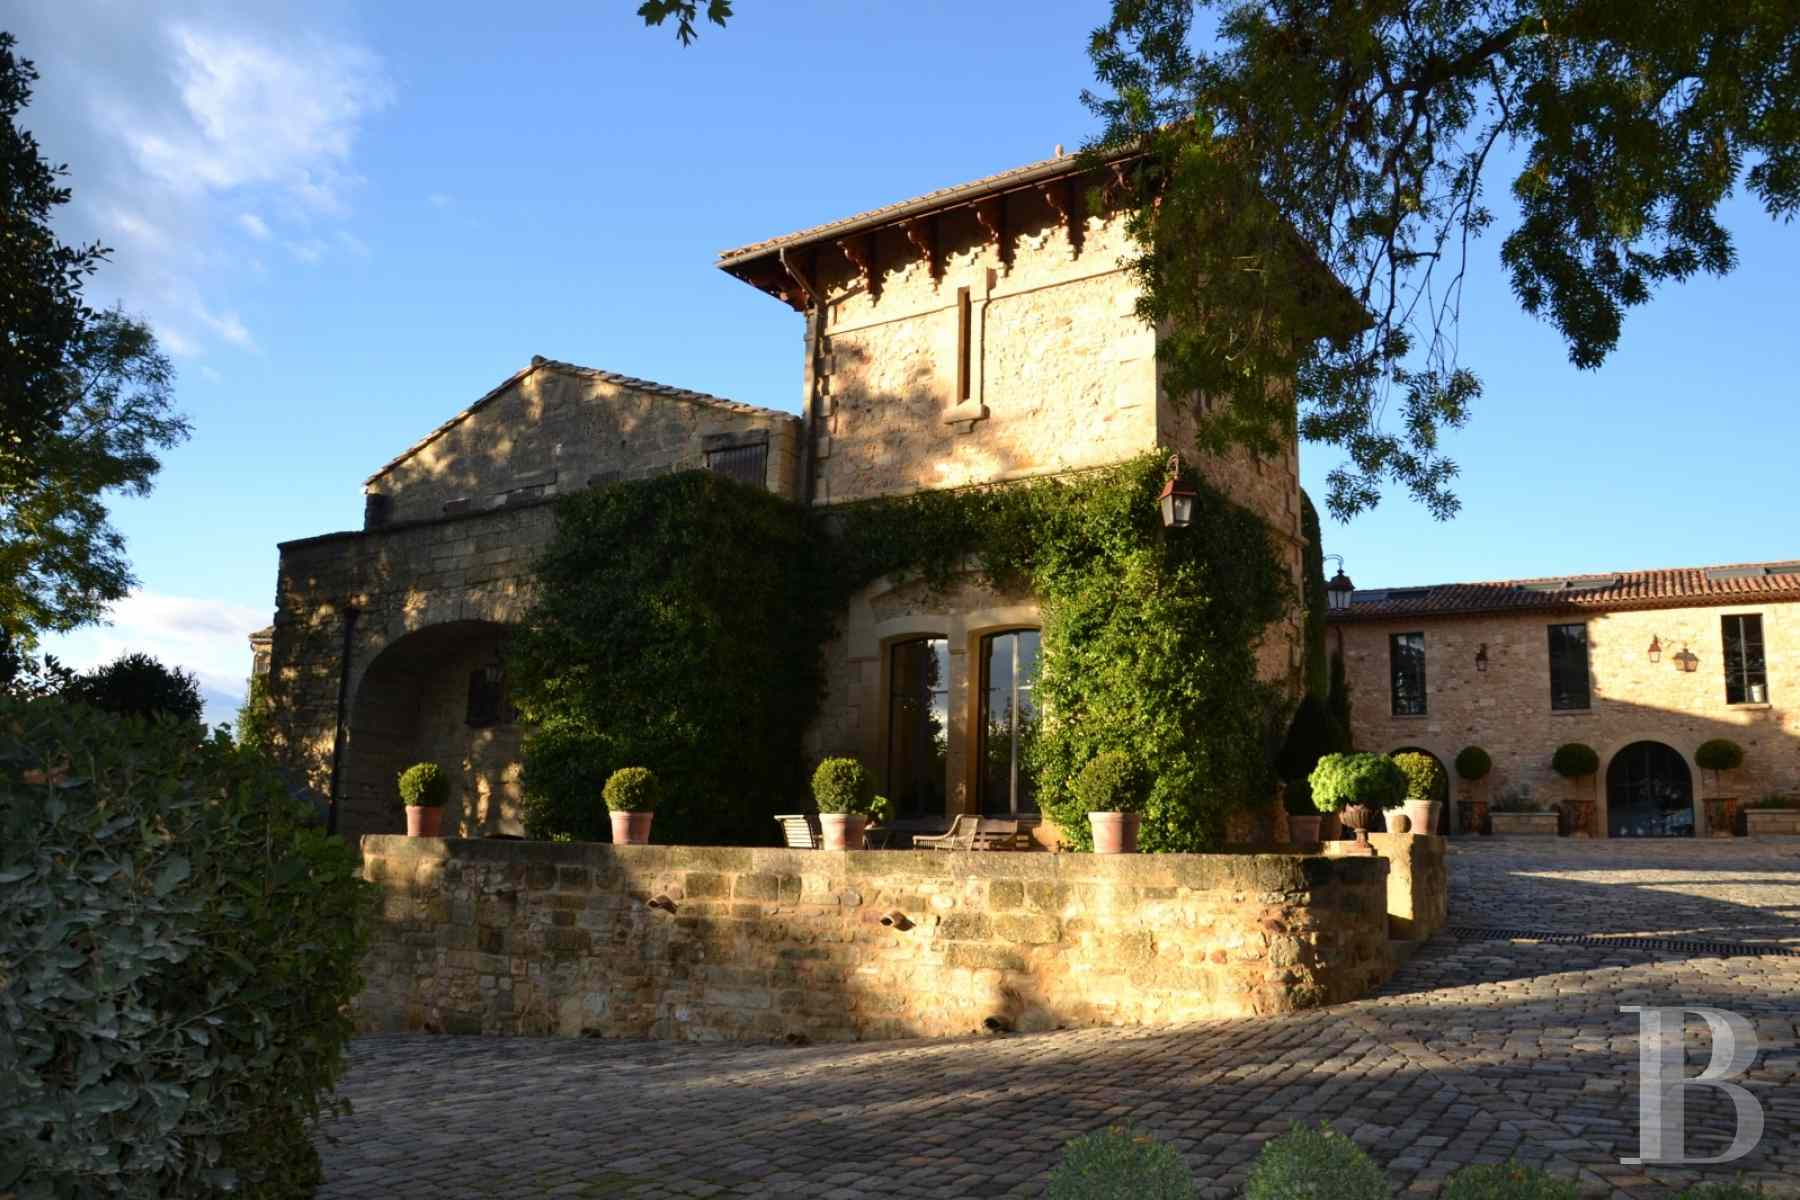 A castle overlooking parklands and countryside on the for French countryside real estate